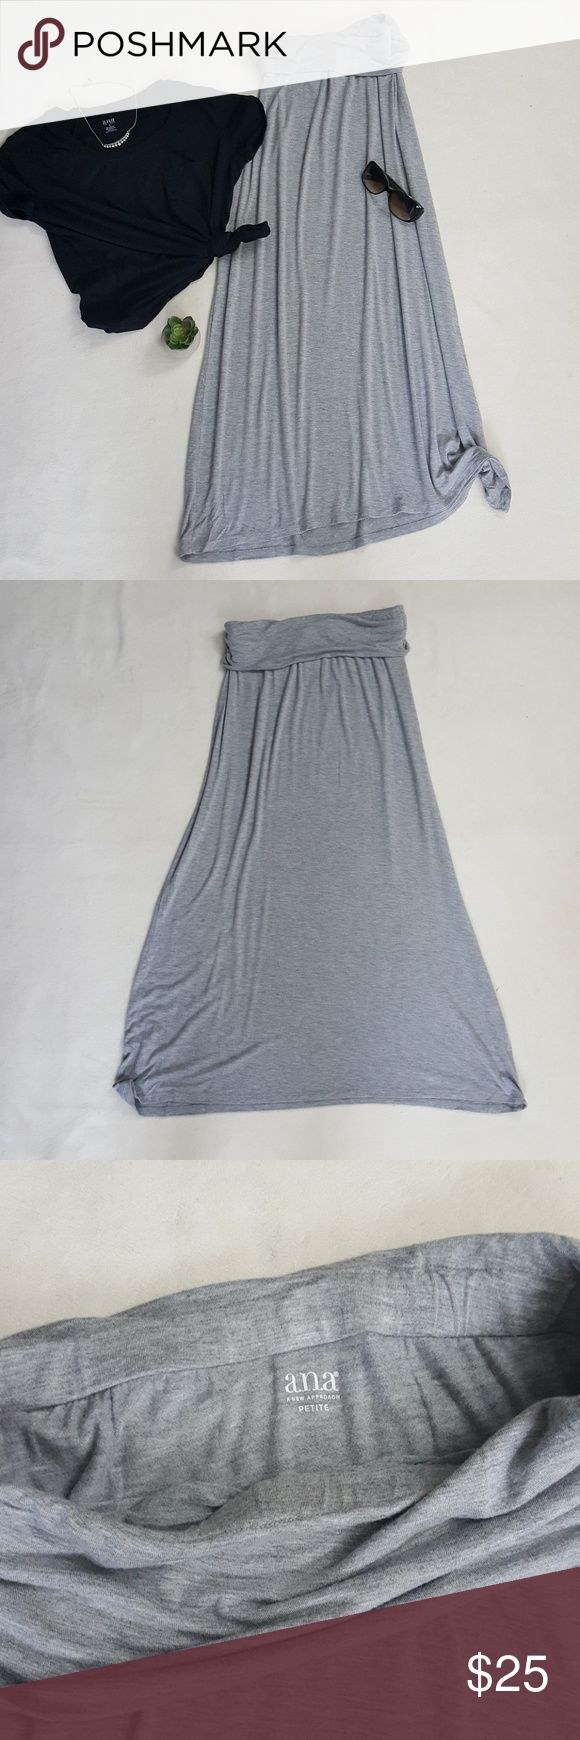 "Heather Gray Maxi Skirt Worn only once!! All it needs is a top knot, cute tan sandals and you Heather grey maxi skirt in a PETITE size/ length.   Skirt has a 1"" elastic strip sewn into waist.  I'm 5'1"" and this hits at the top of my feet. Measurements: *Waist (unstretched) 14.5"" ; 4.5"" fold over waistband. *Length: 35"" Approx. Fabric: * 95% Cotton, 5% Spandex Necklace available in my closet. a.n.a Skirts Maxi"